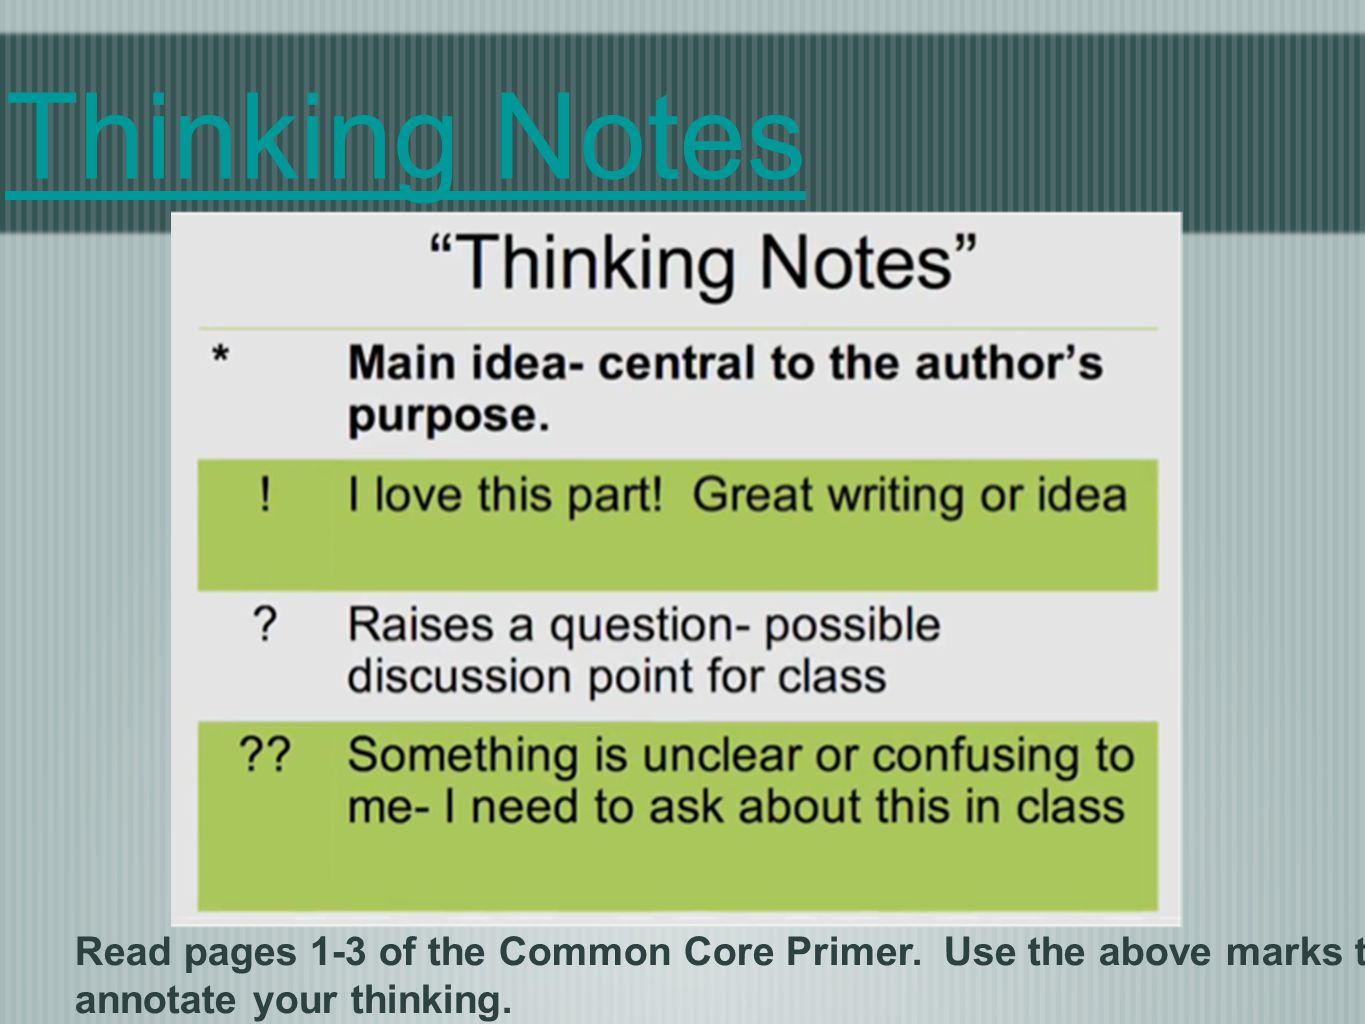 Thinking Notes Read pages 1-3 of the Common Core Primer.